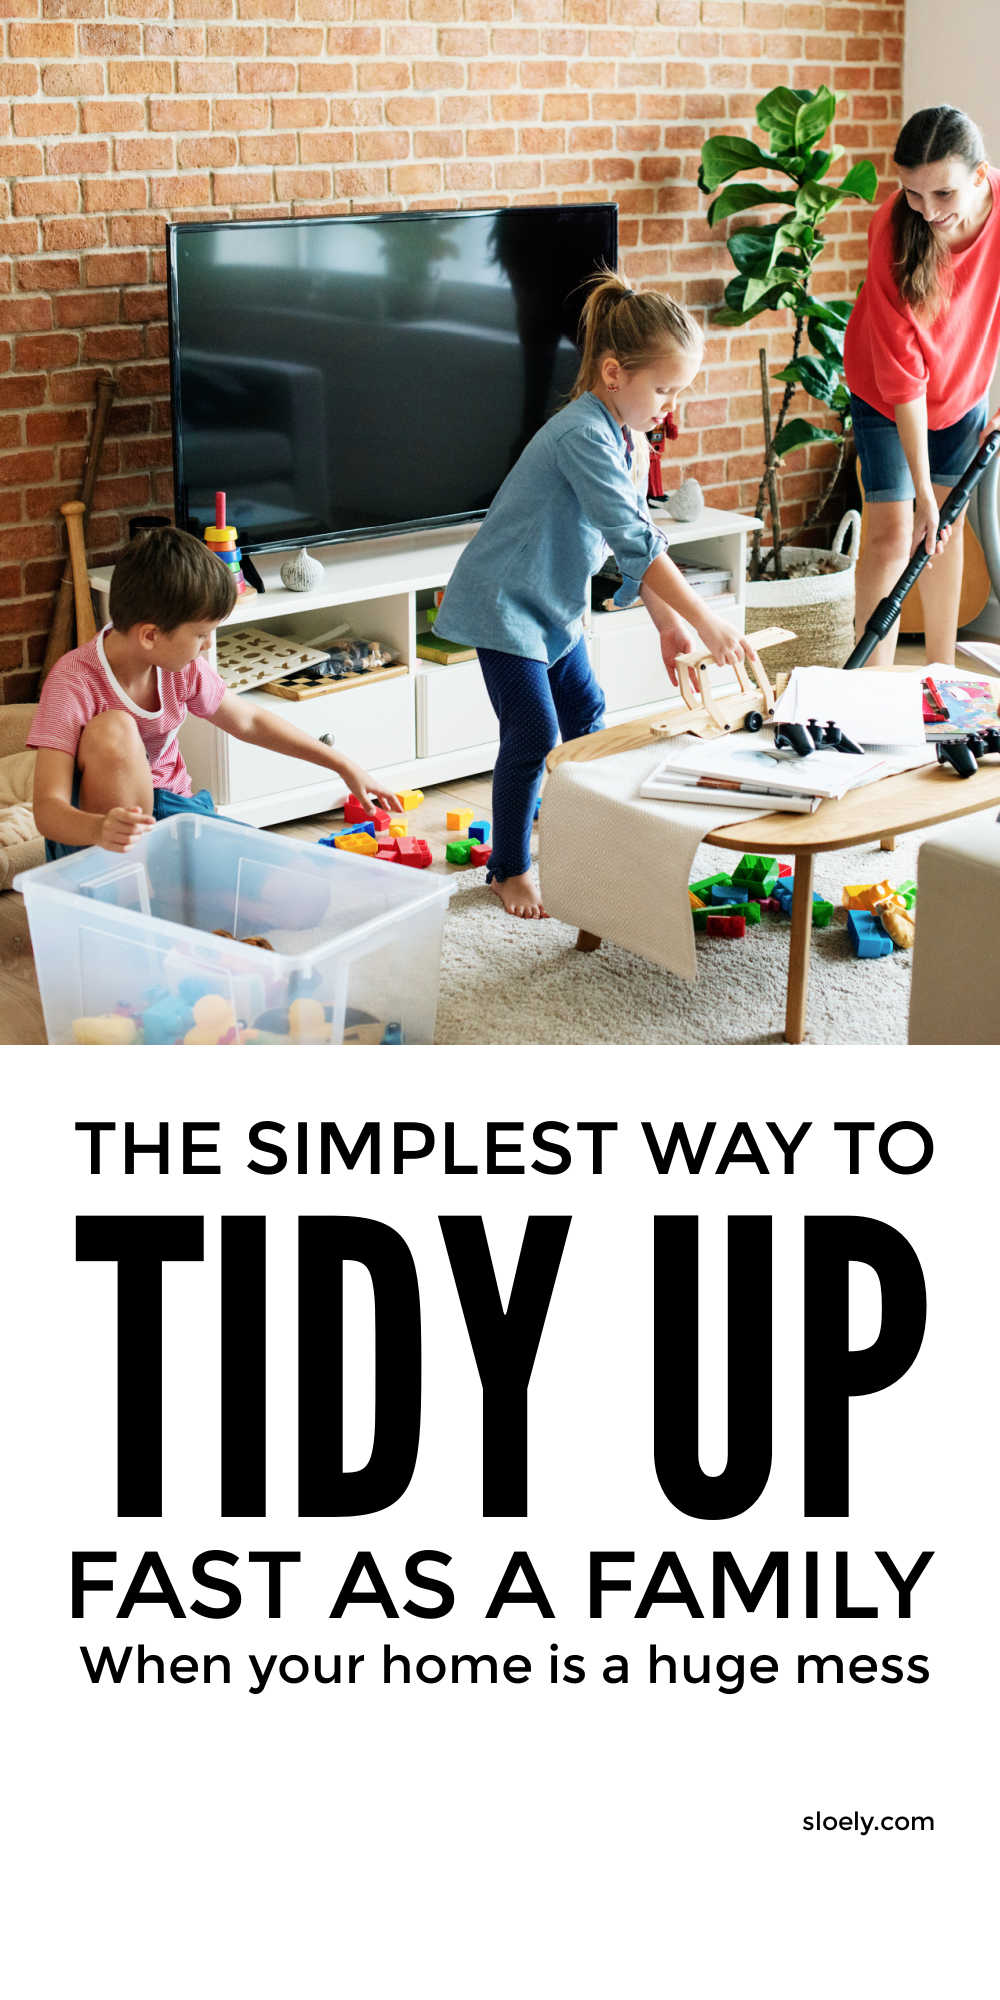 How To Tidy Up Fast